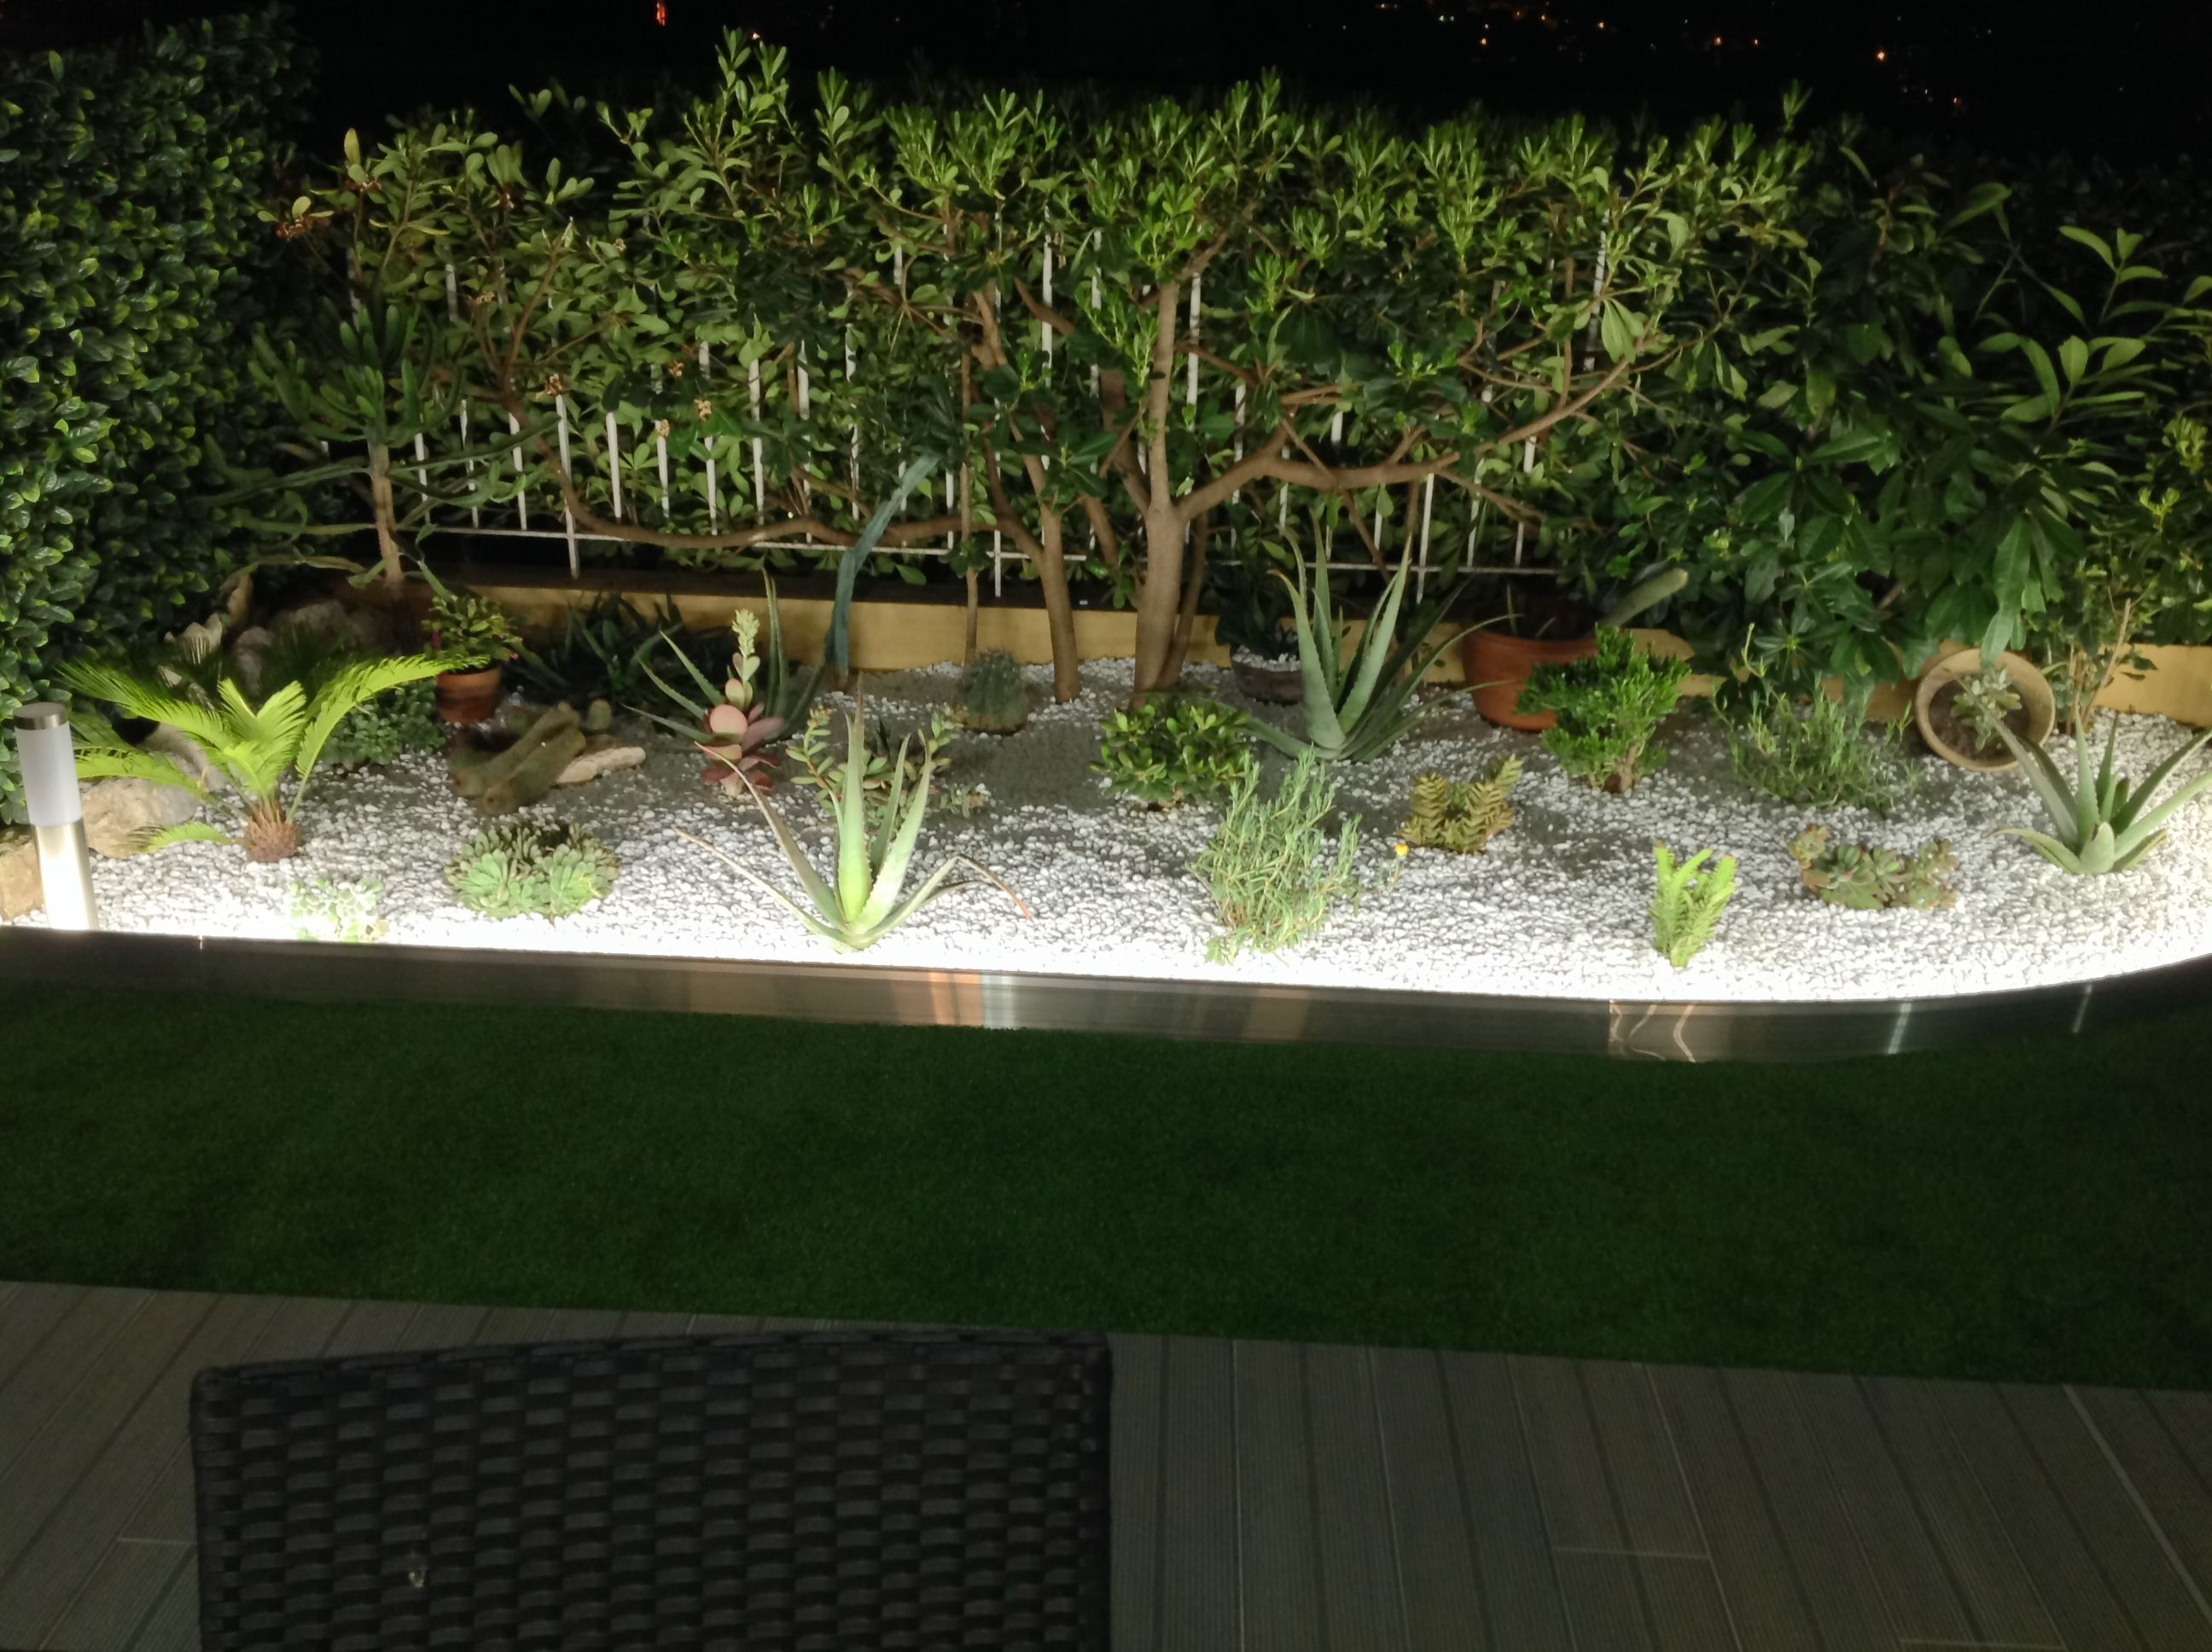 Eclairage A Led Eclairage Jardin A Led